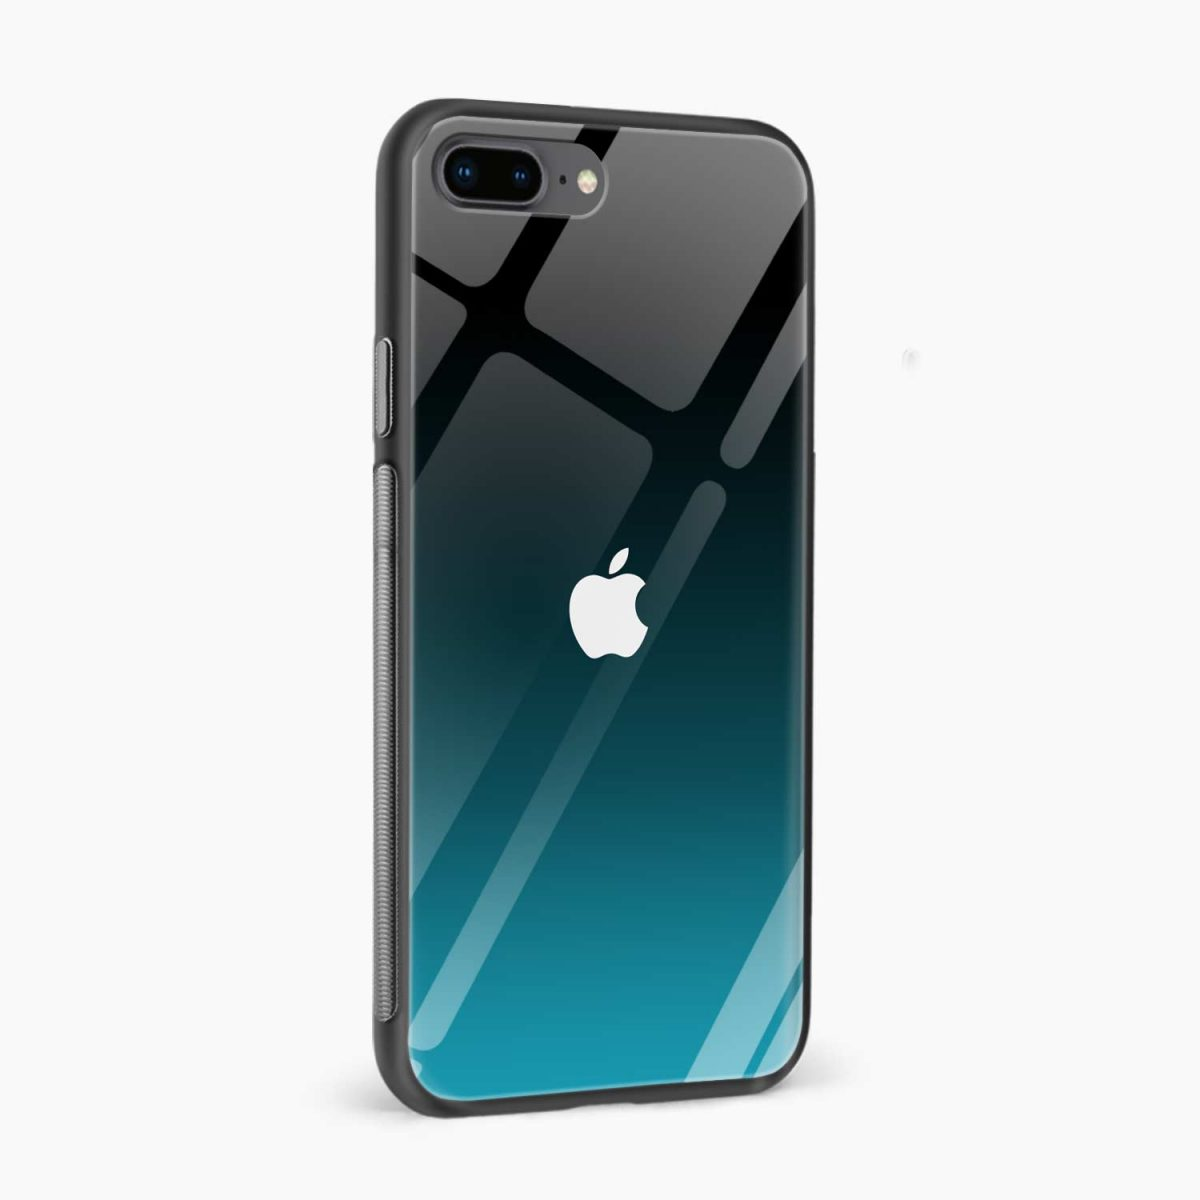 ultramarine glass glass view apple iphone 7 8 plus back cover 3